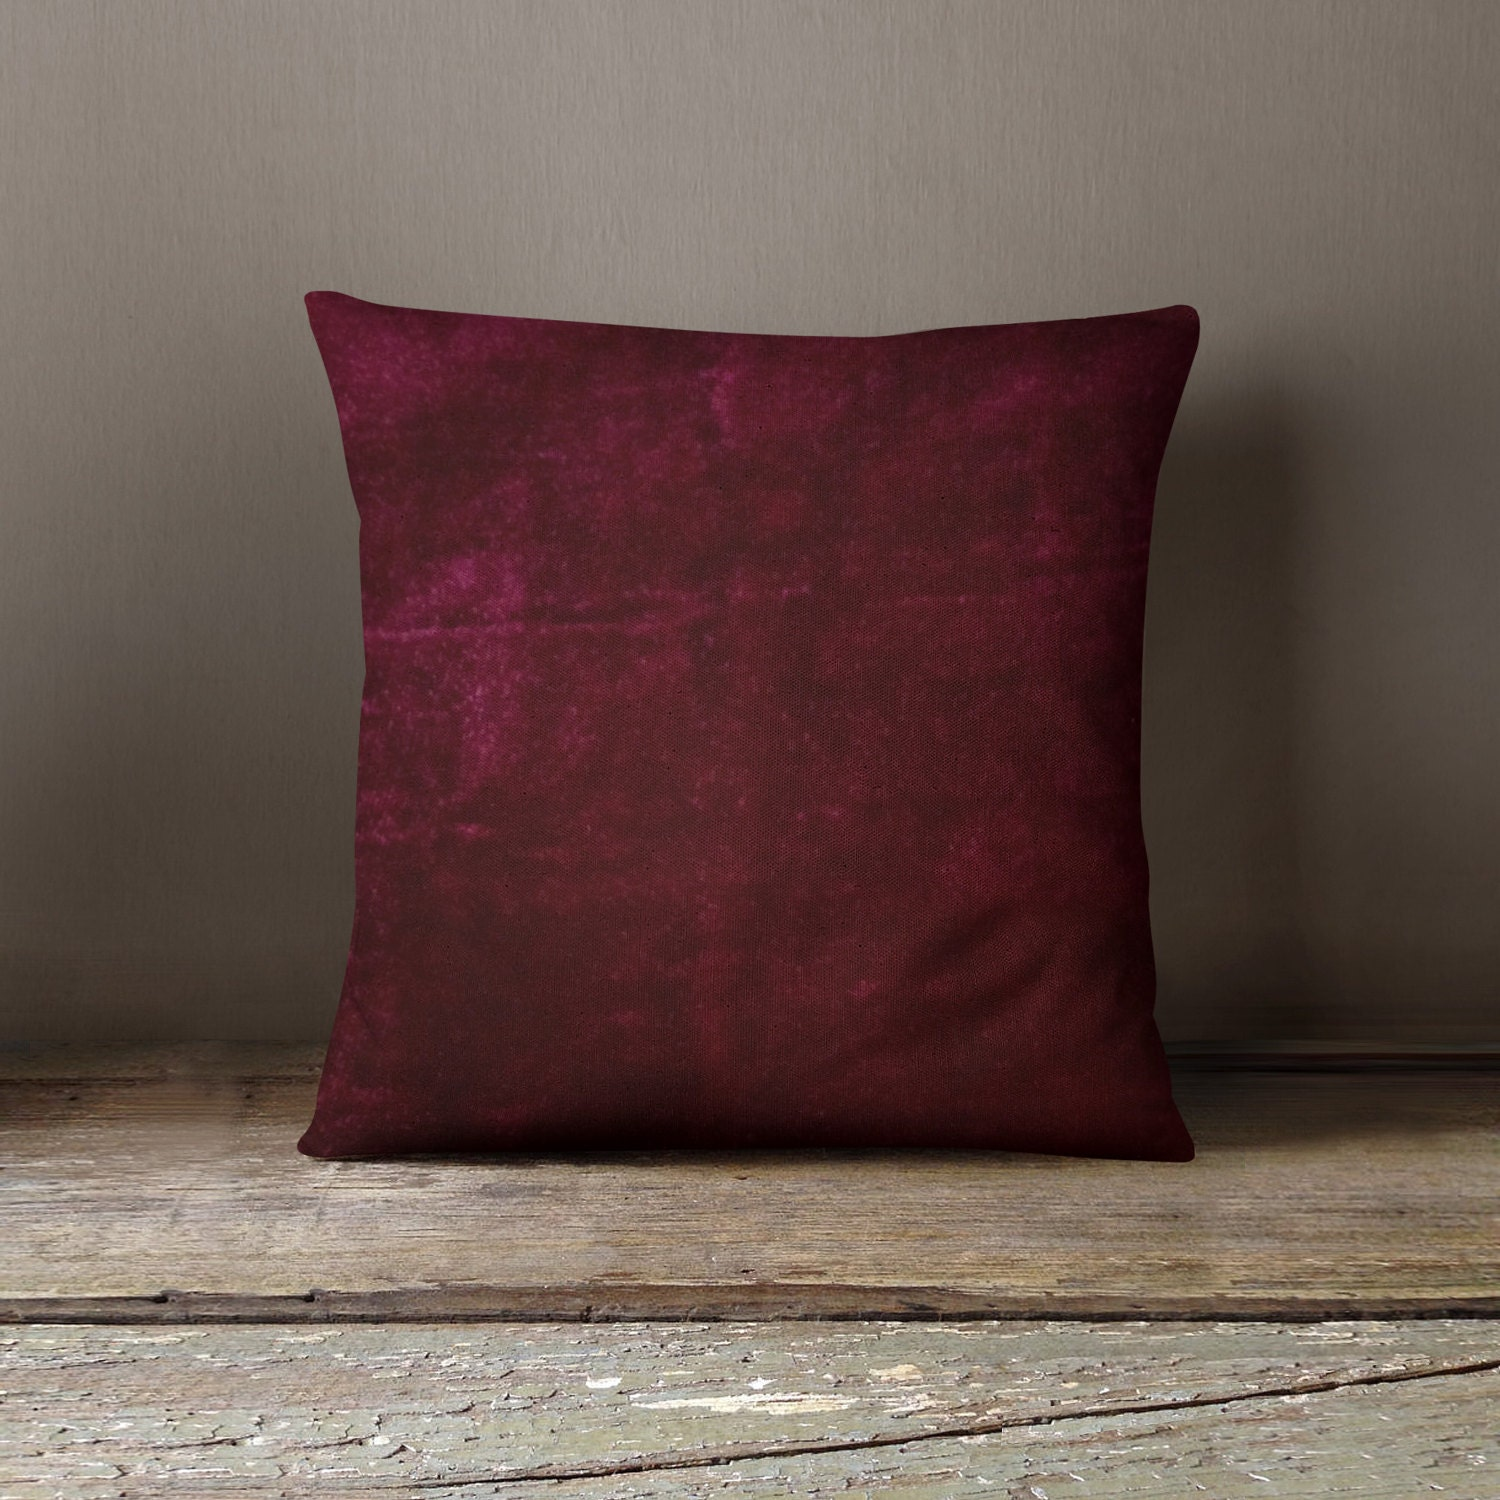 Burgundy Velvet Pillow Wedding Decor Plush Dorm Throw